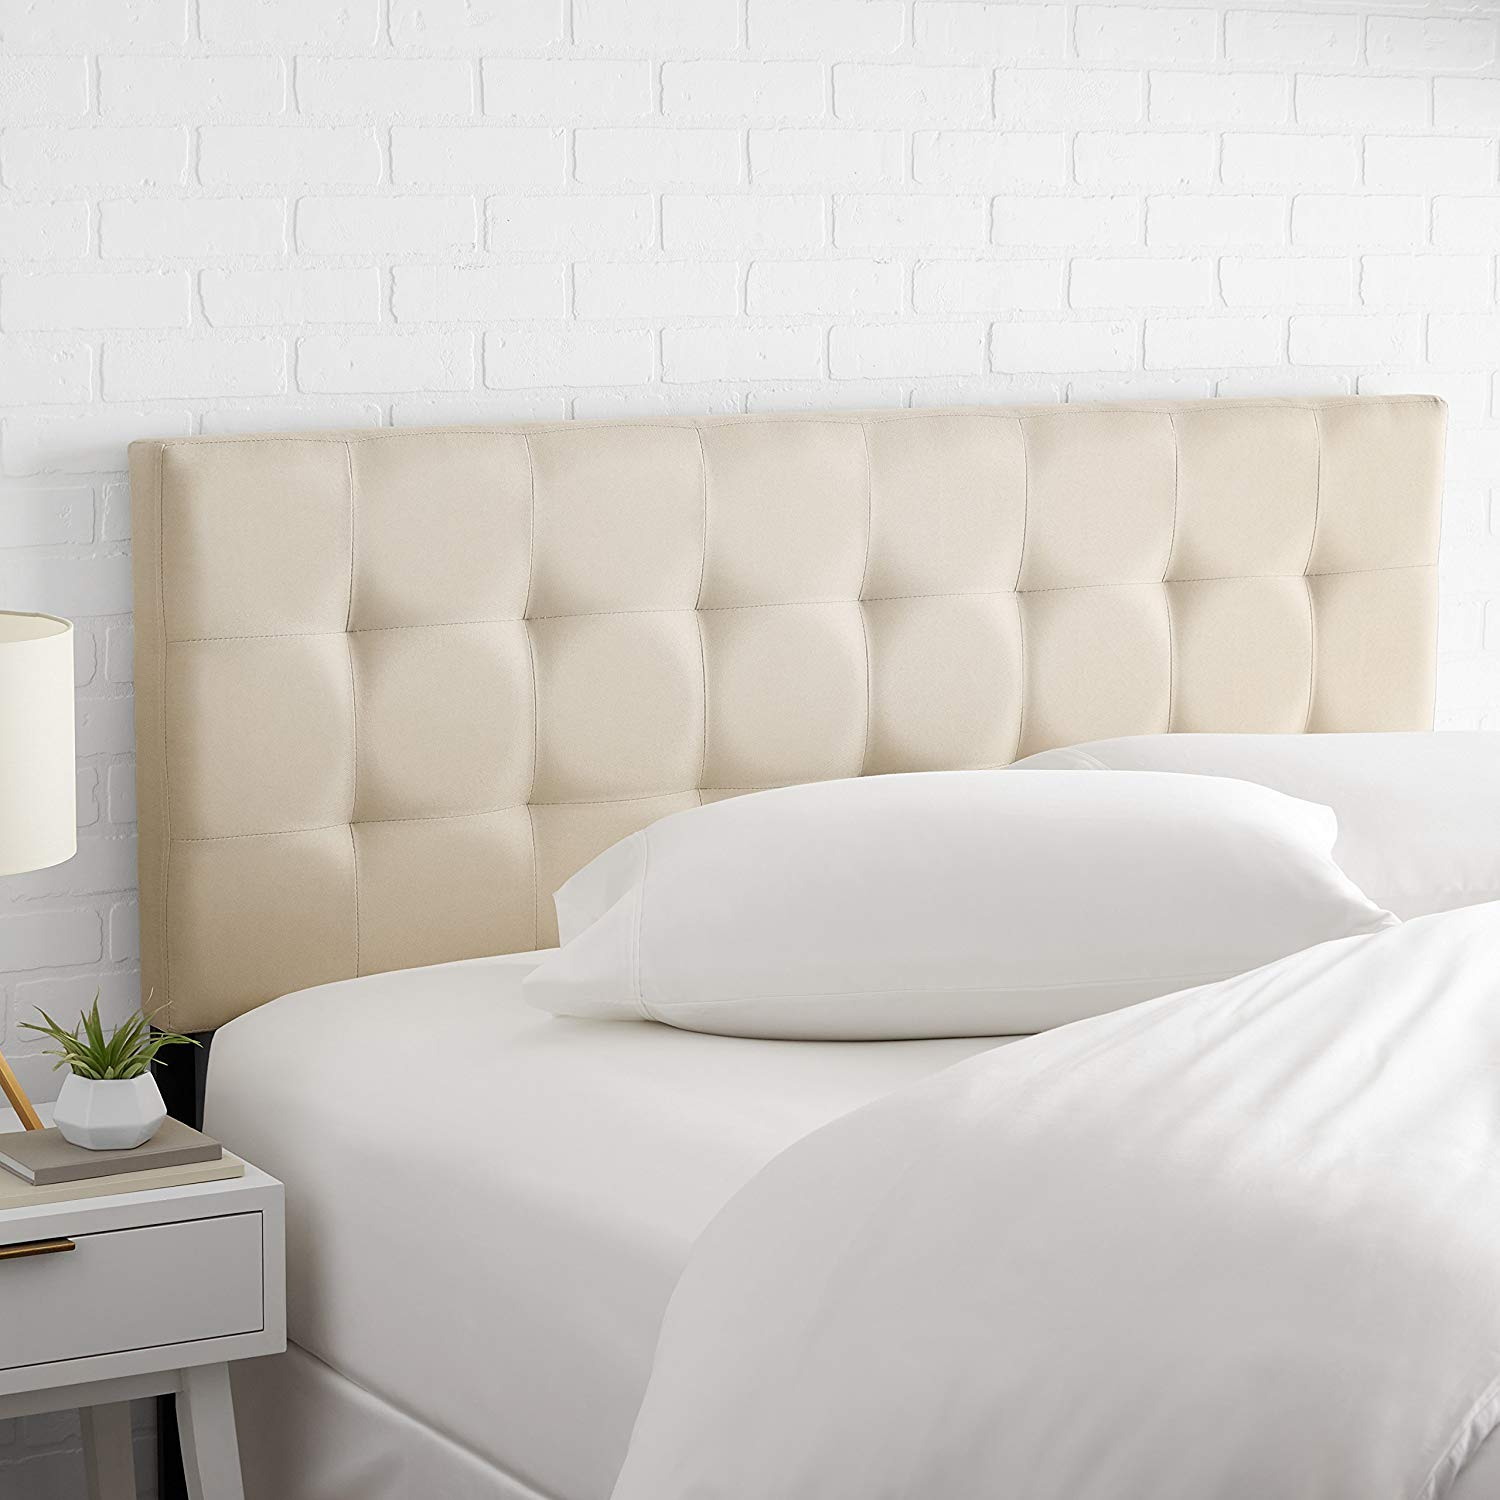 Bed Headboard Top 10 Best Queen Headboards In 2019 All Top Ten Reviews